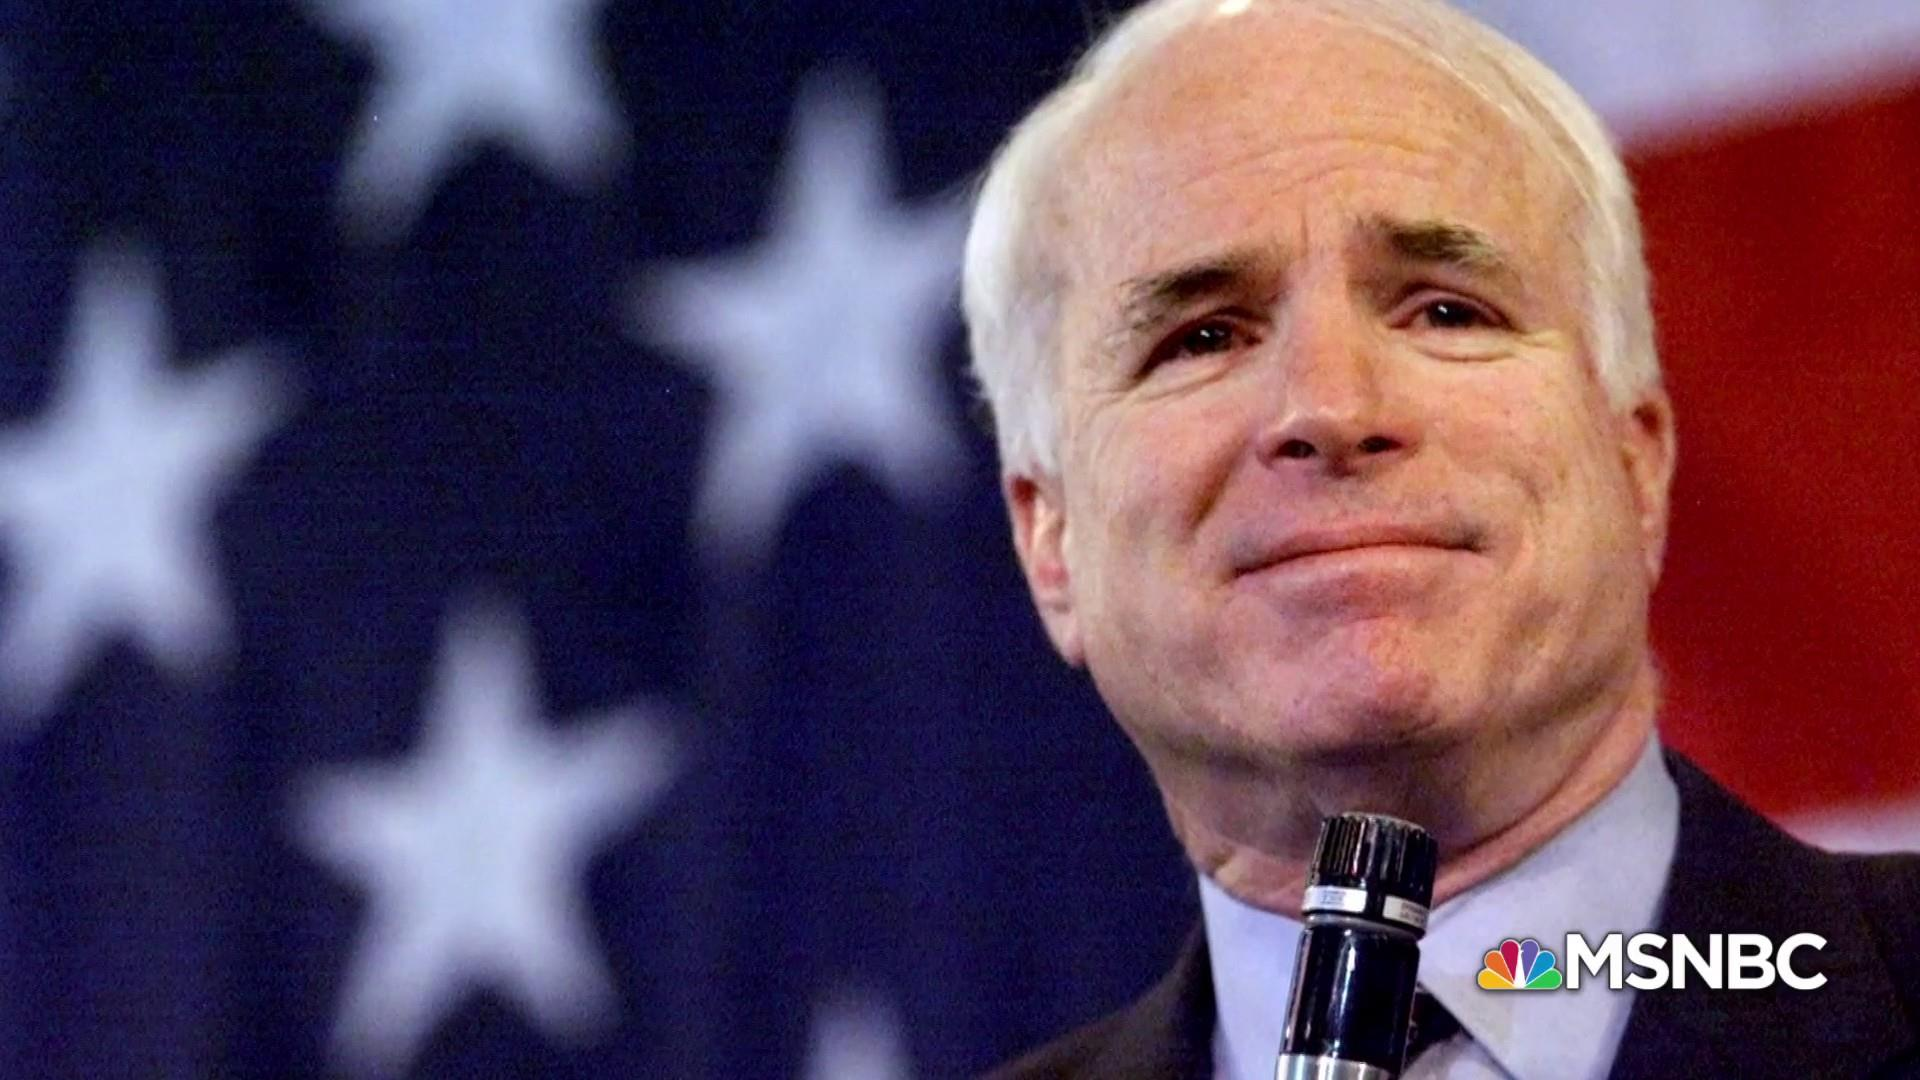 Karen Finney: GOP should look to McCain for party's direction